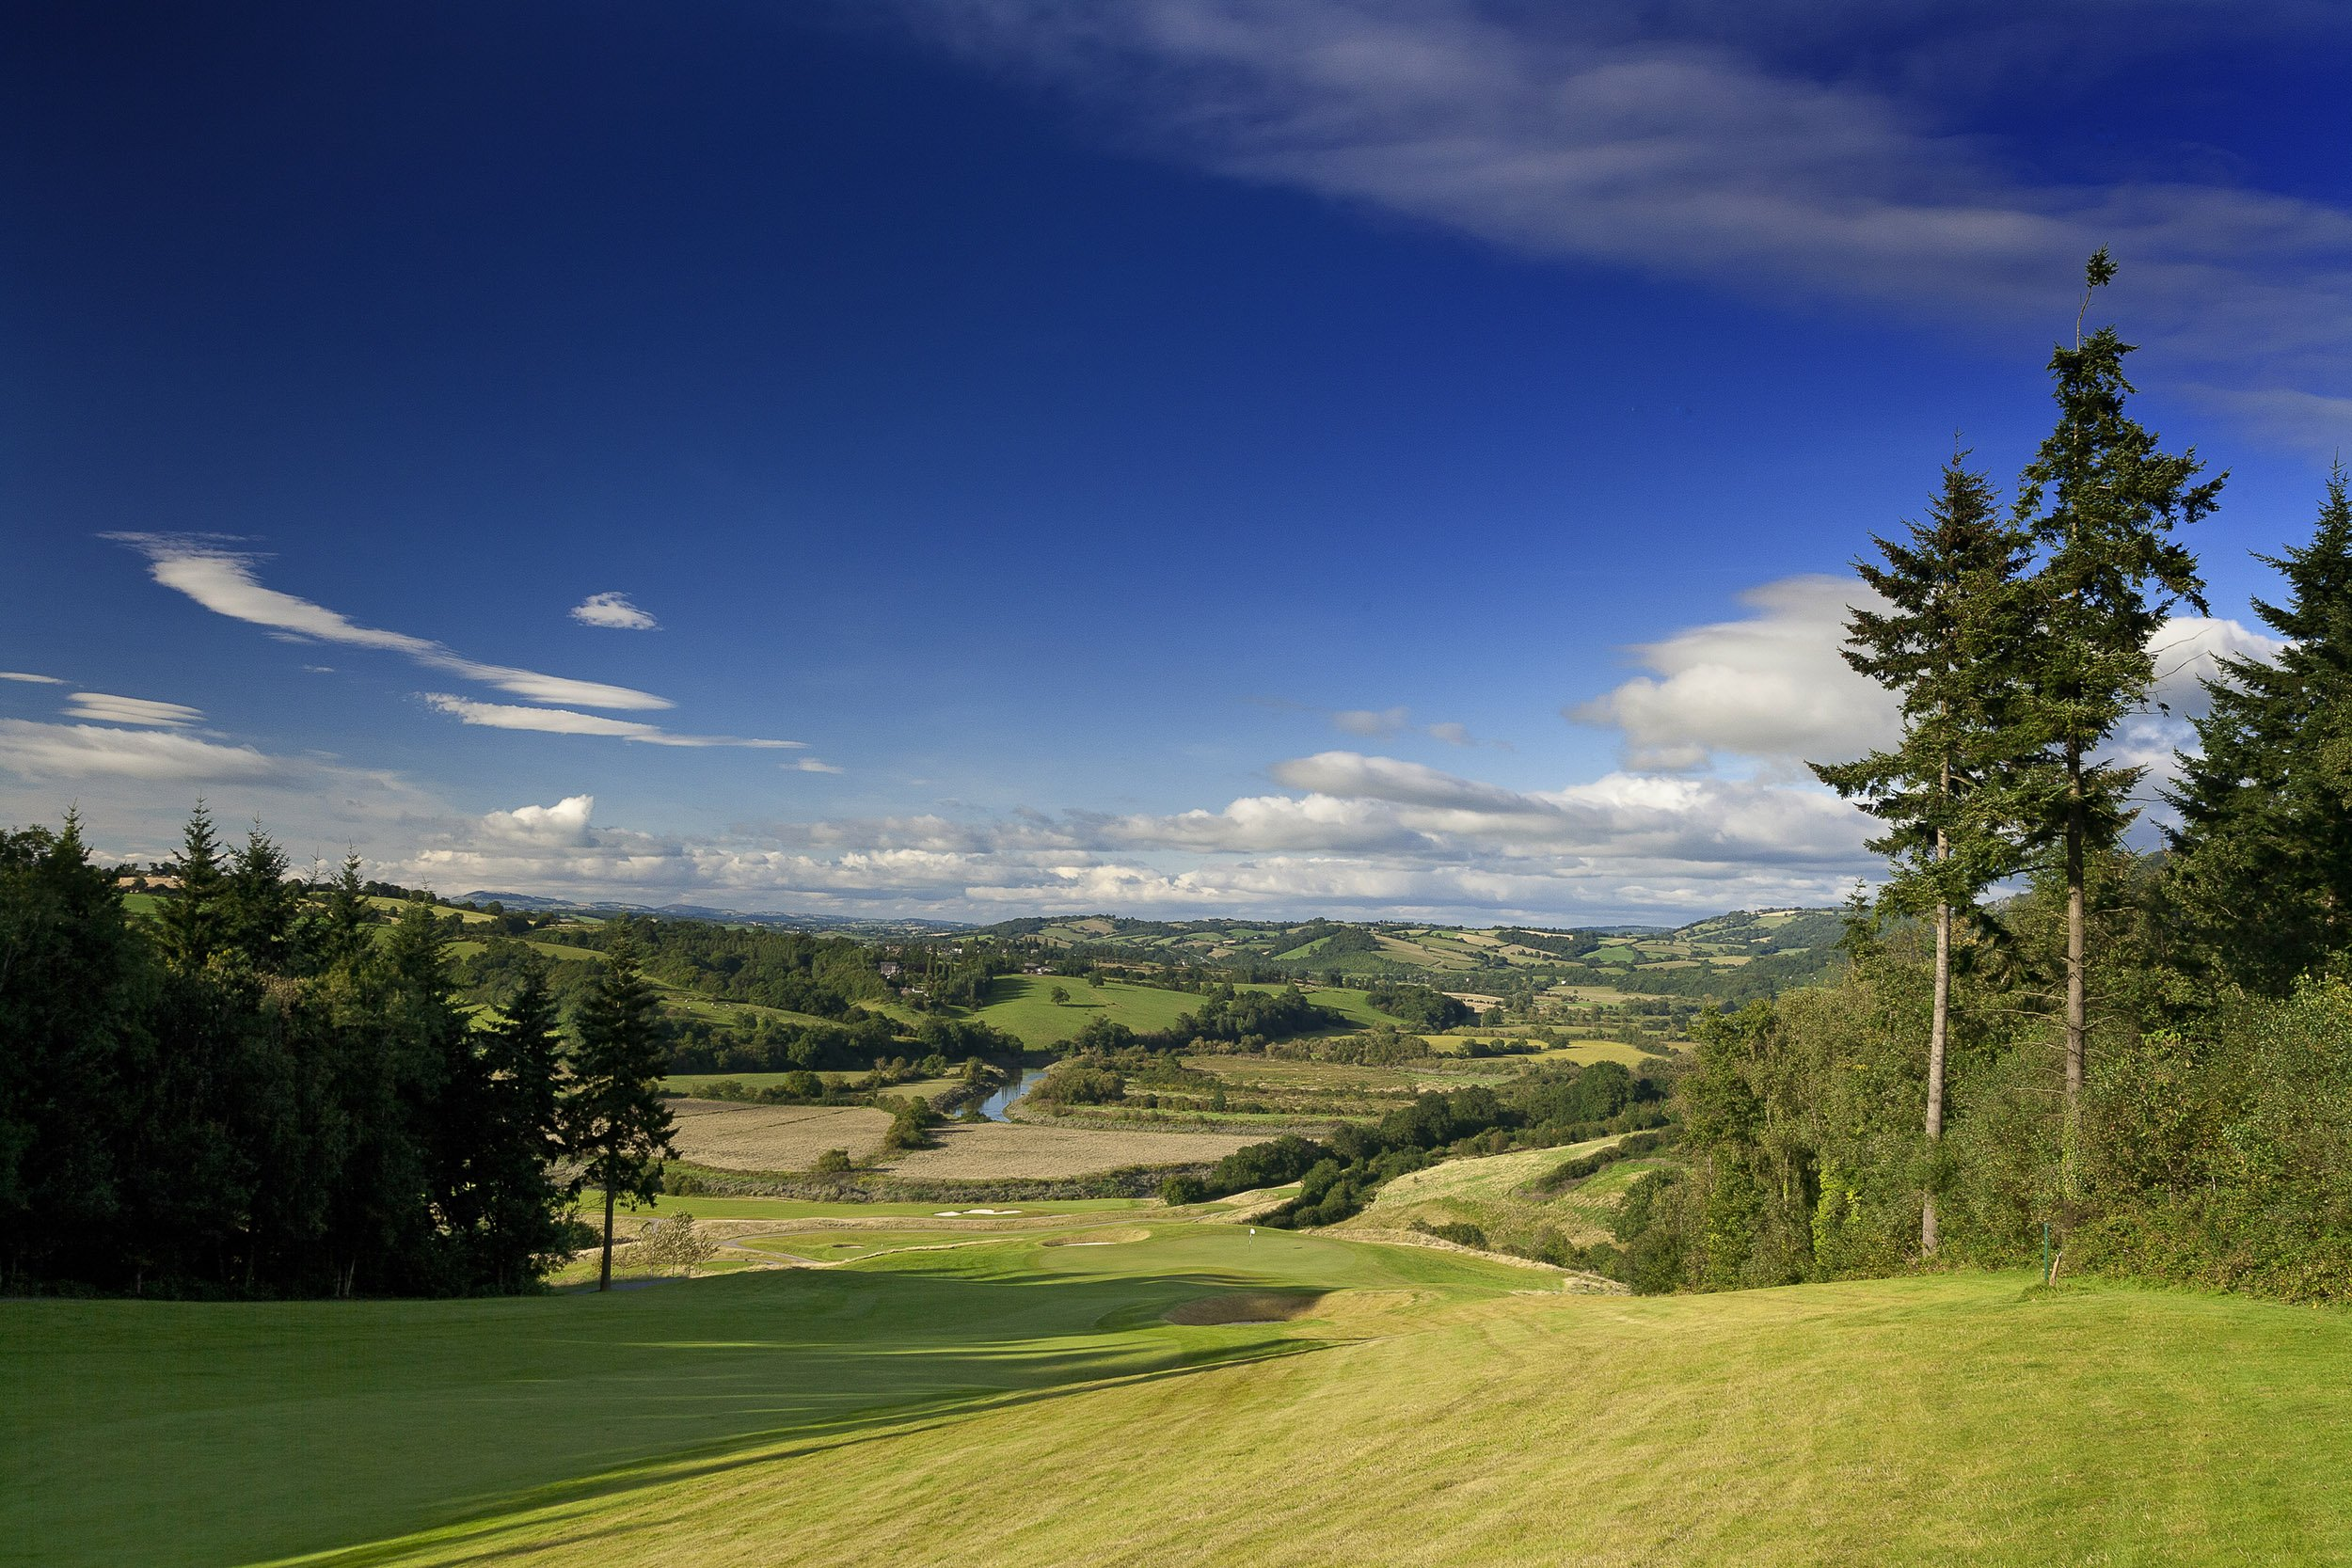 The Montgomerie Golf course at The Celtic Manor Resort.